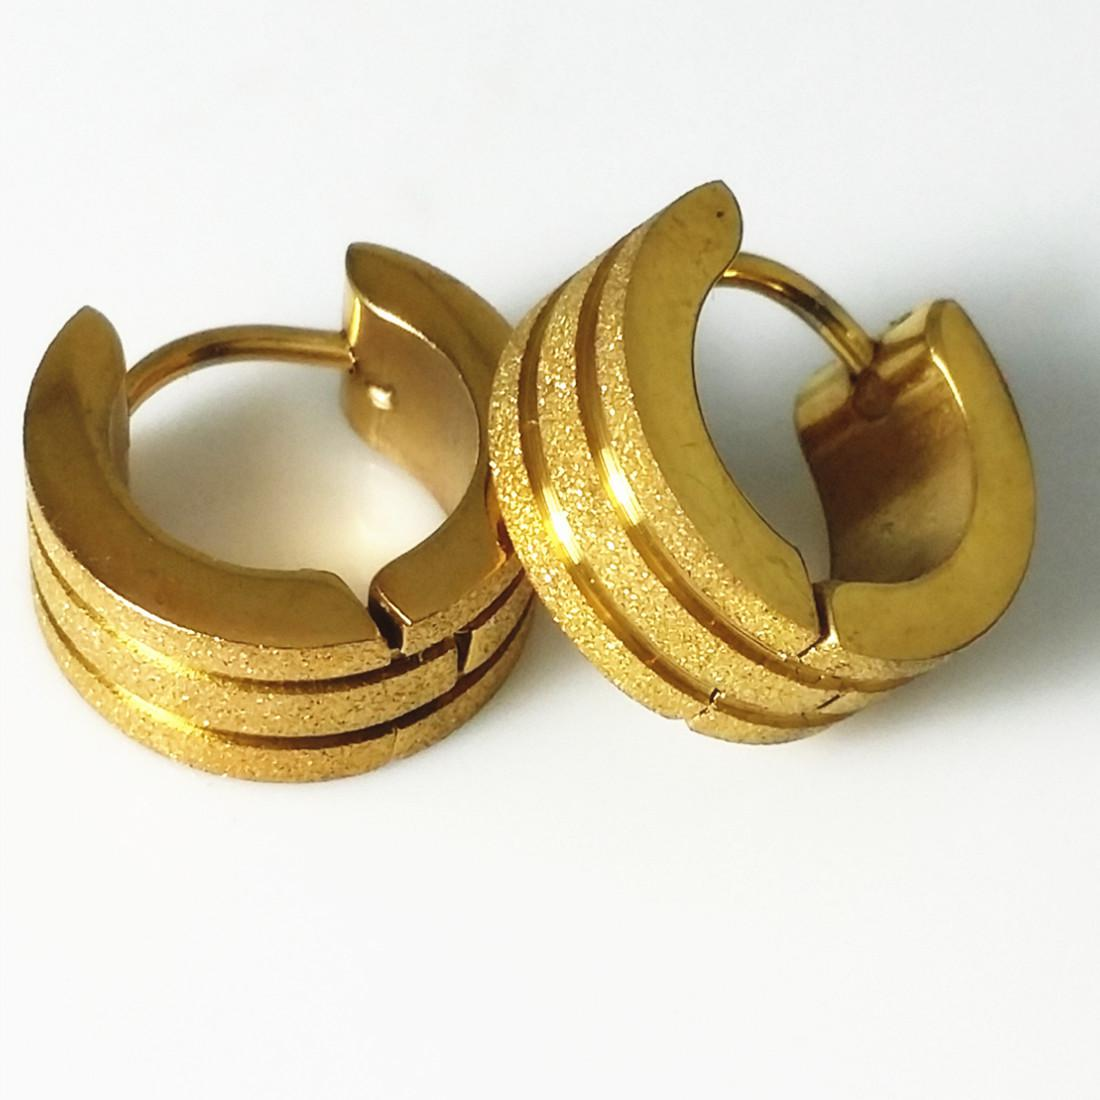 the earrings mk valdosta hoop vault golden jewelry michael kors ring